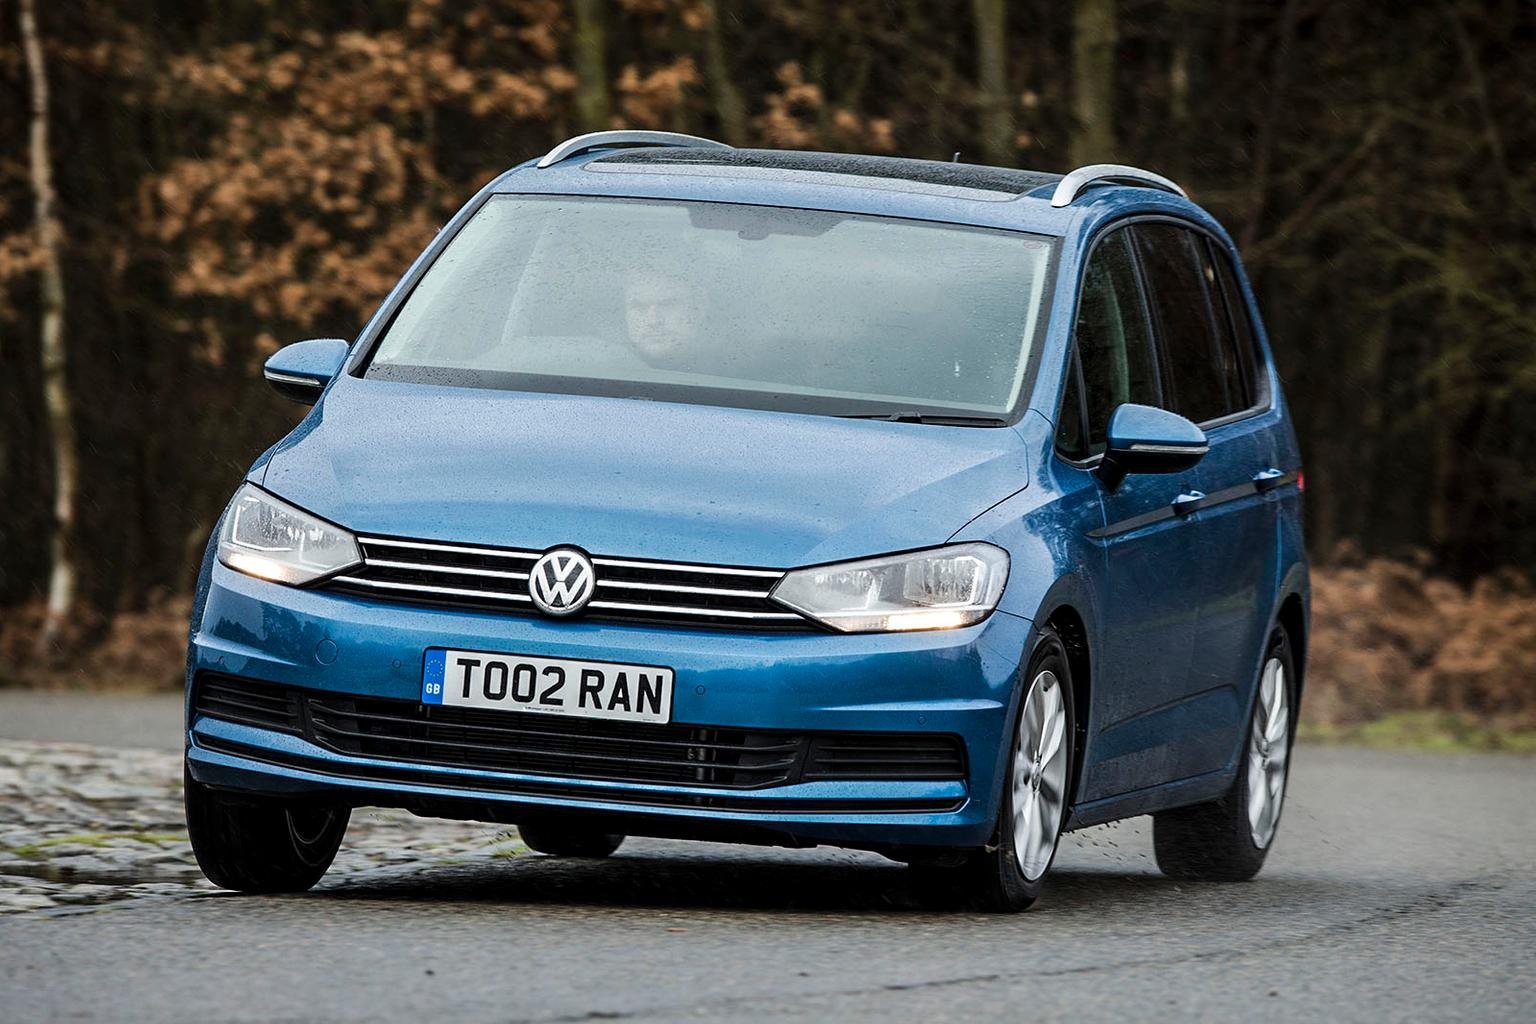 2016 Volkswagen Touran 2.0 TDI review